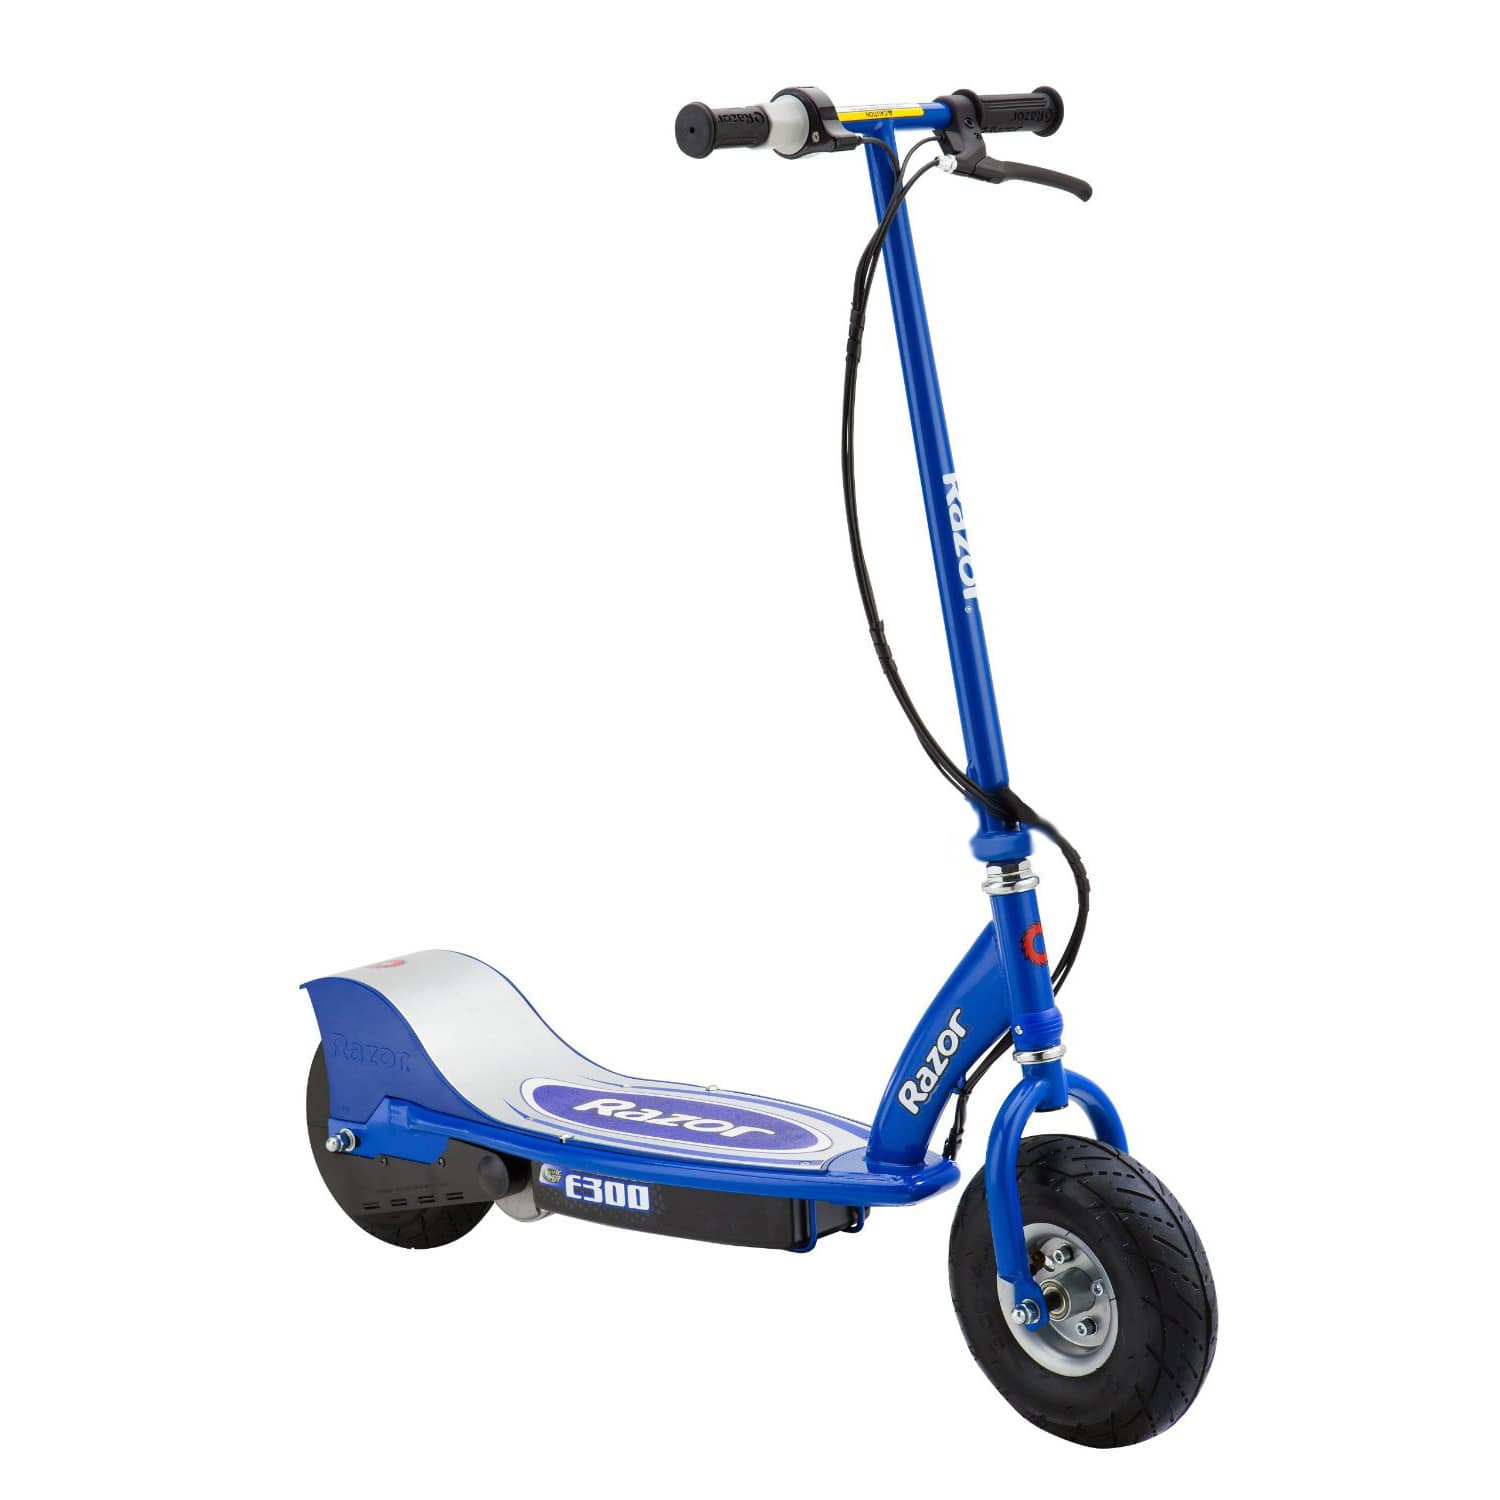 Razor E300 Electric 24 Volt Rechargeable Motorized Ride On Kids Scooter, Blue $150